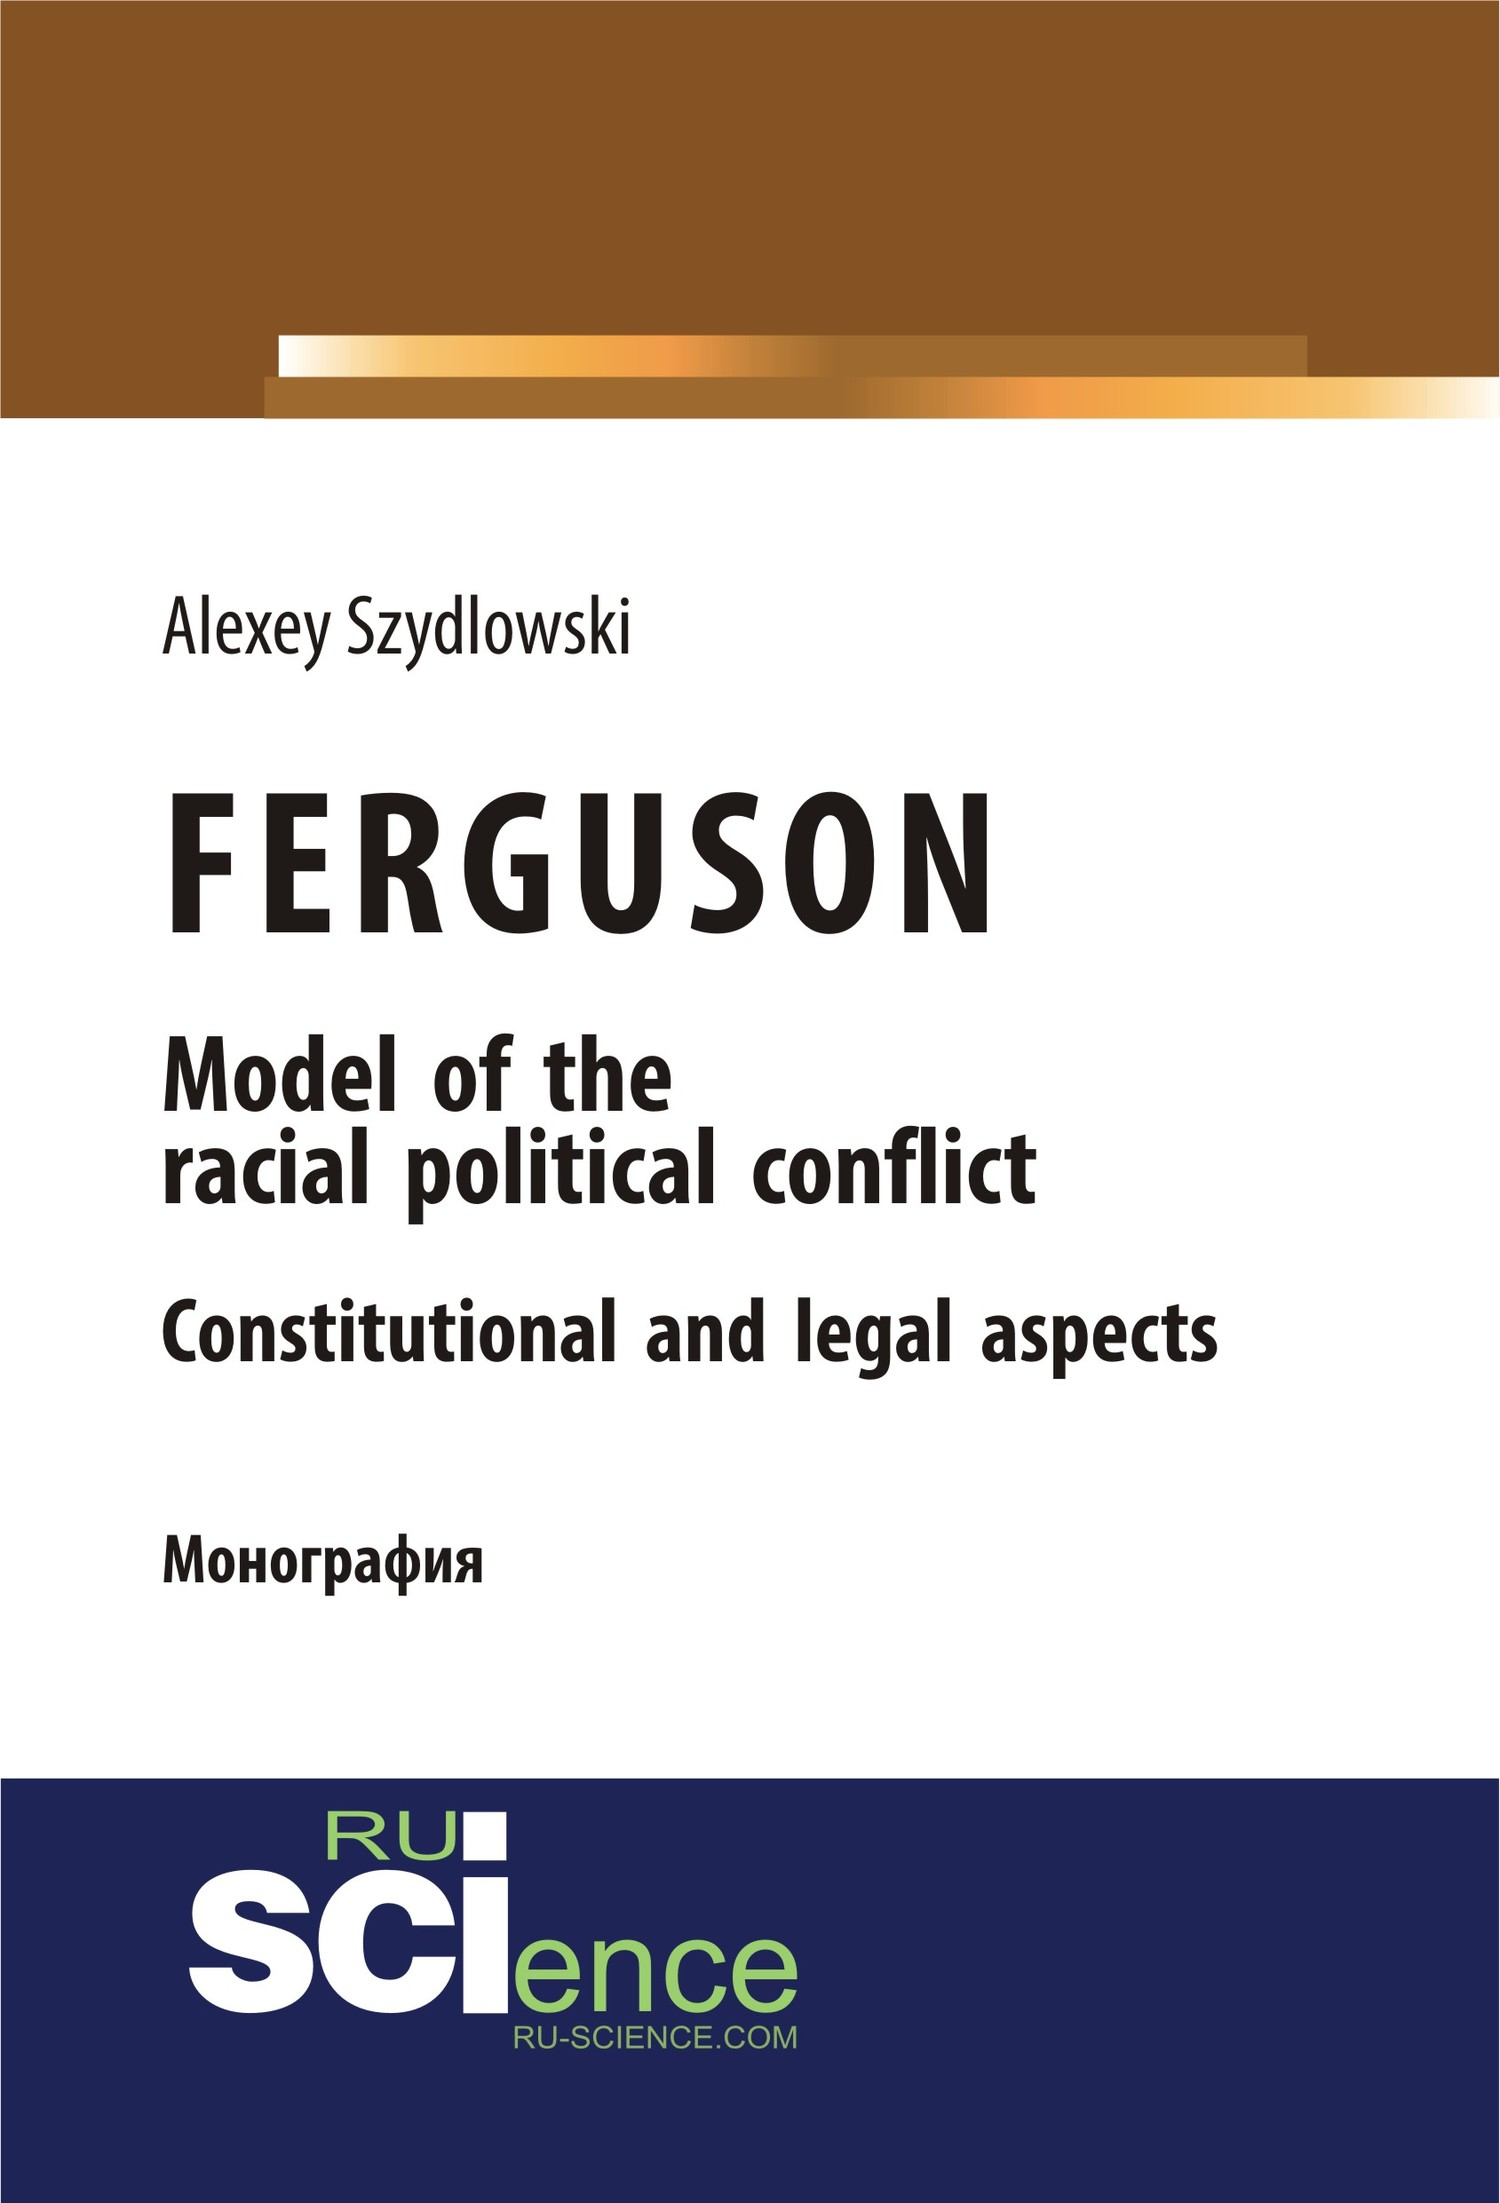 Alexey Szydlowski FERGUSON. Model of the racial political conflict. Constitutional and legal aspects constitutional identity